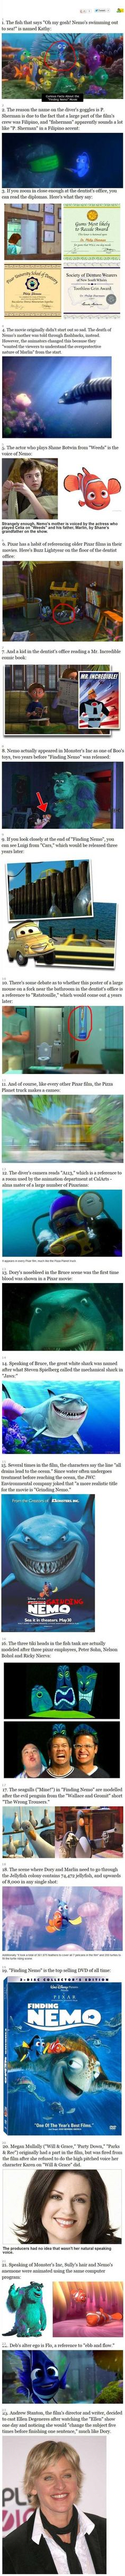 Facts About Finding Nemo! This is cool